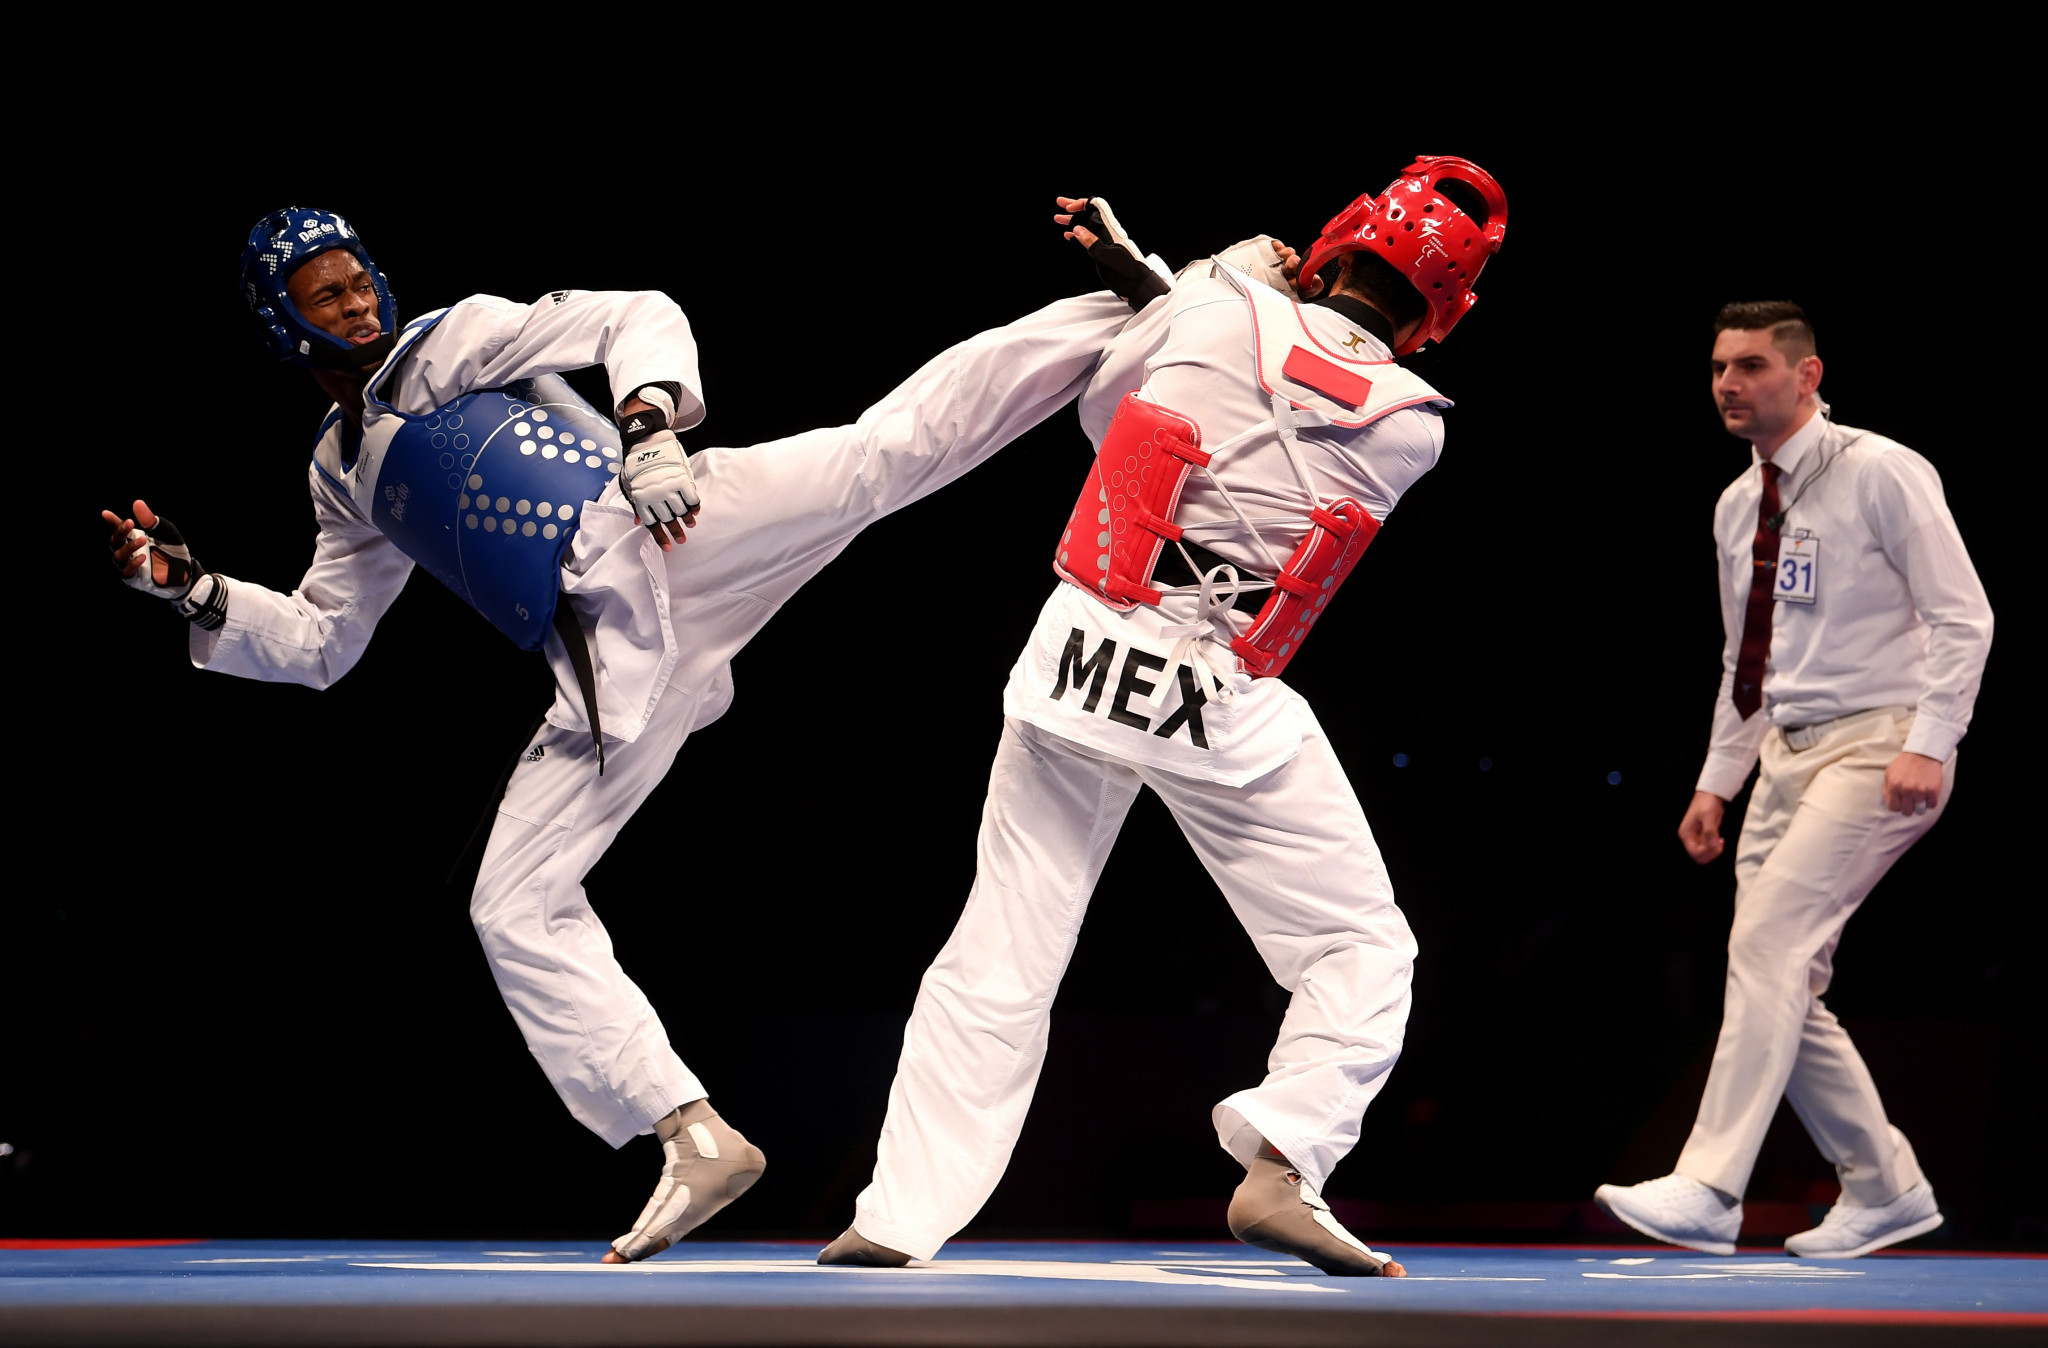 The next edition of the World Taekwondo Championships is due to take place in 2021 ©Getty Images